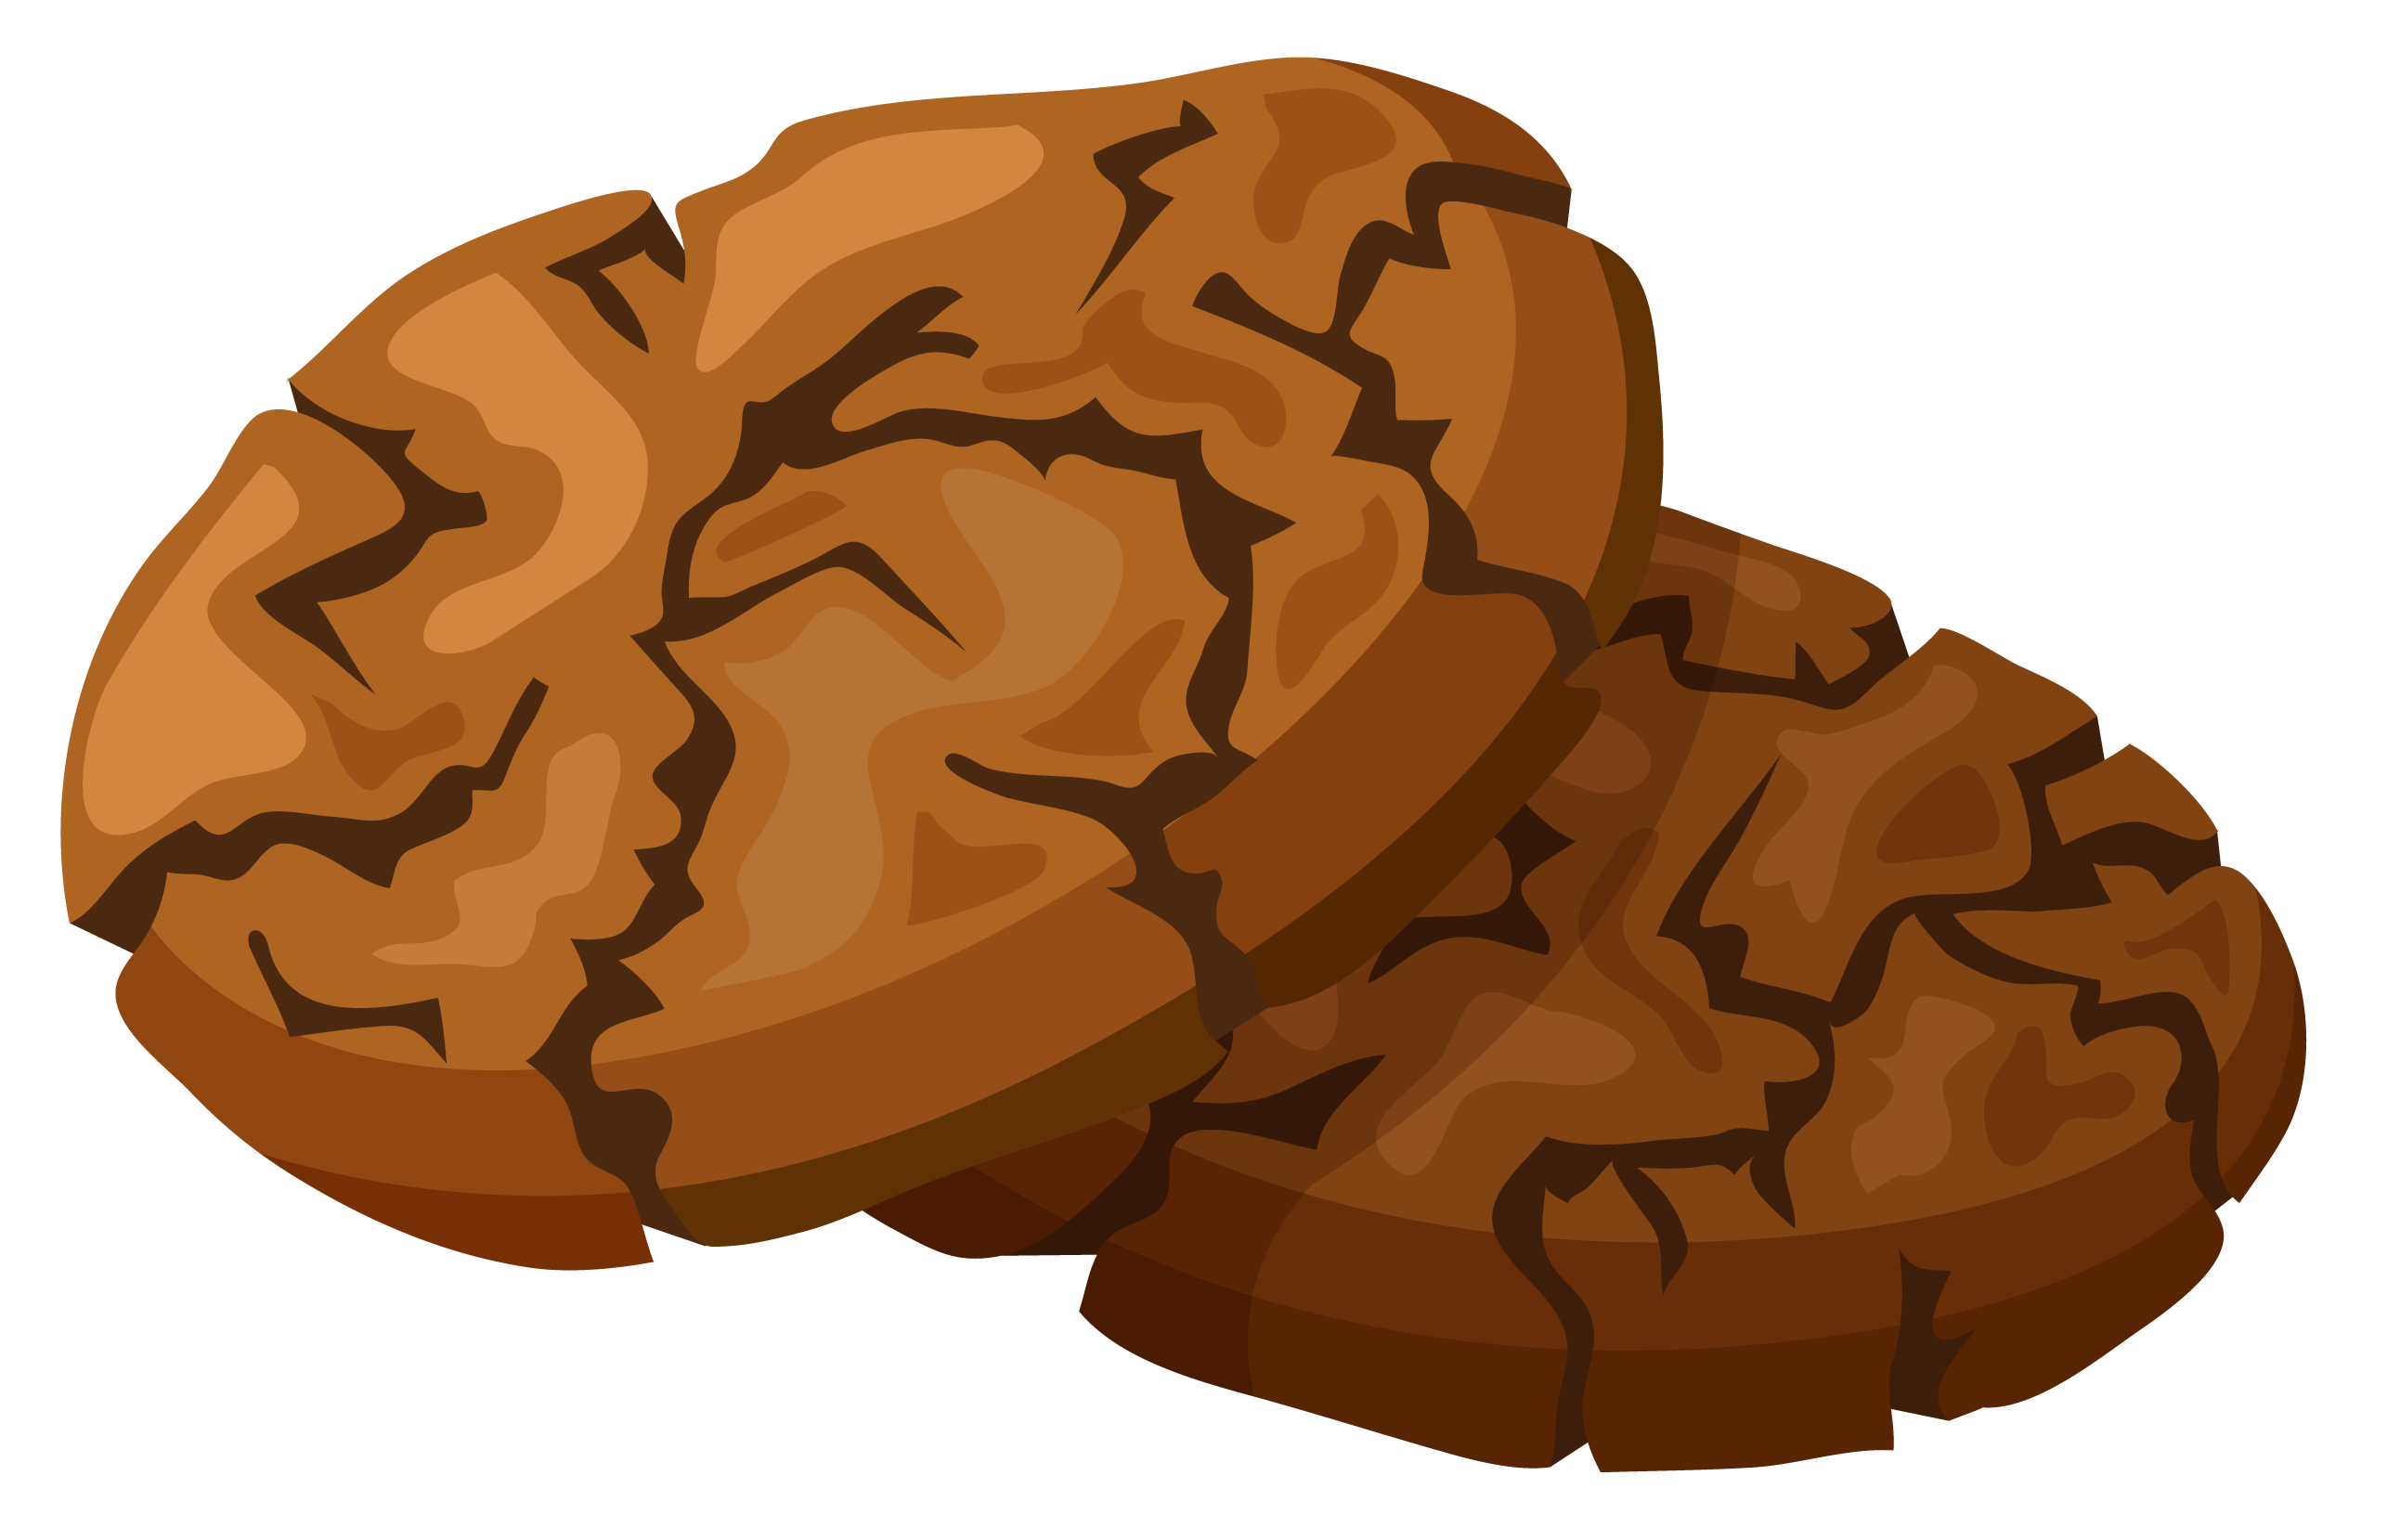 Cracked Cookies Clipart